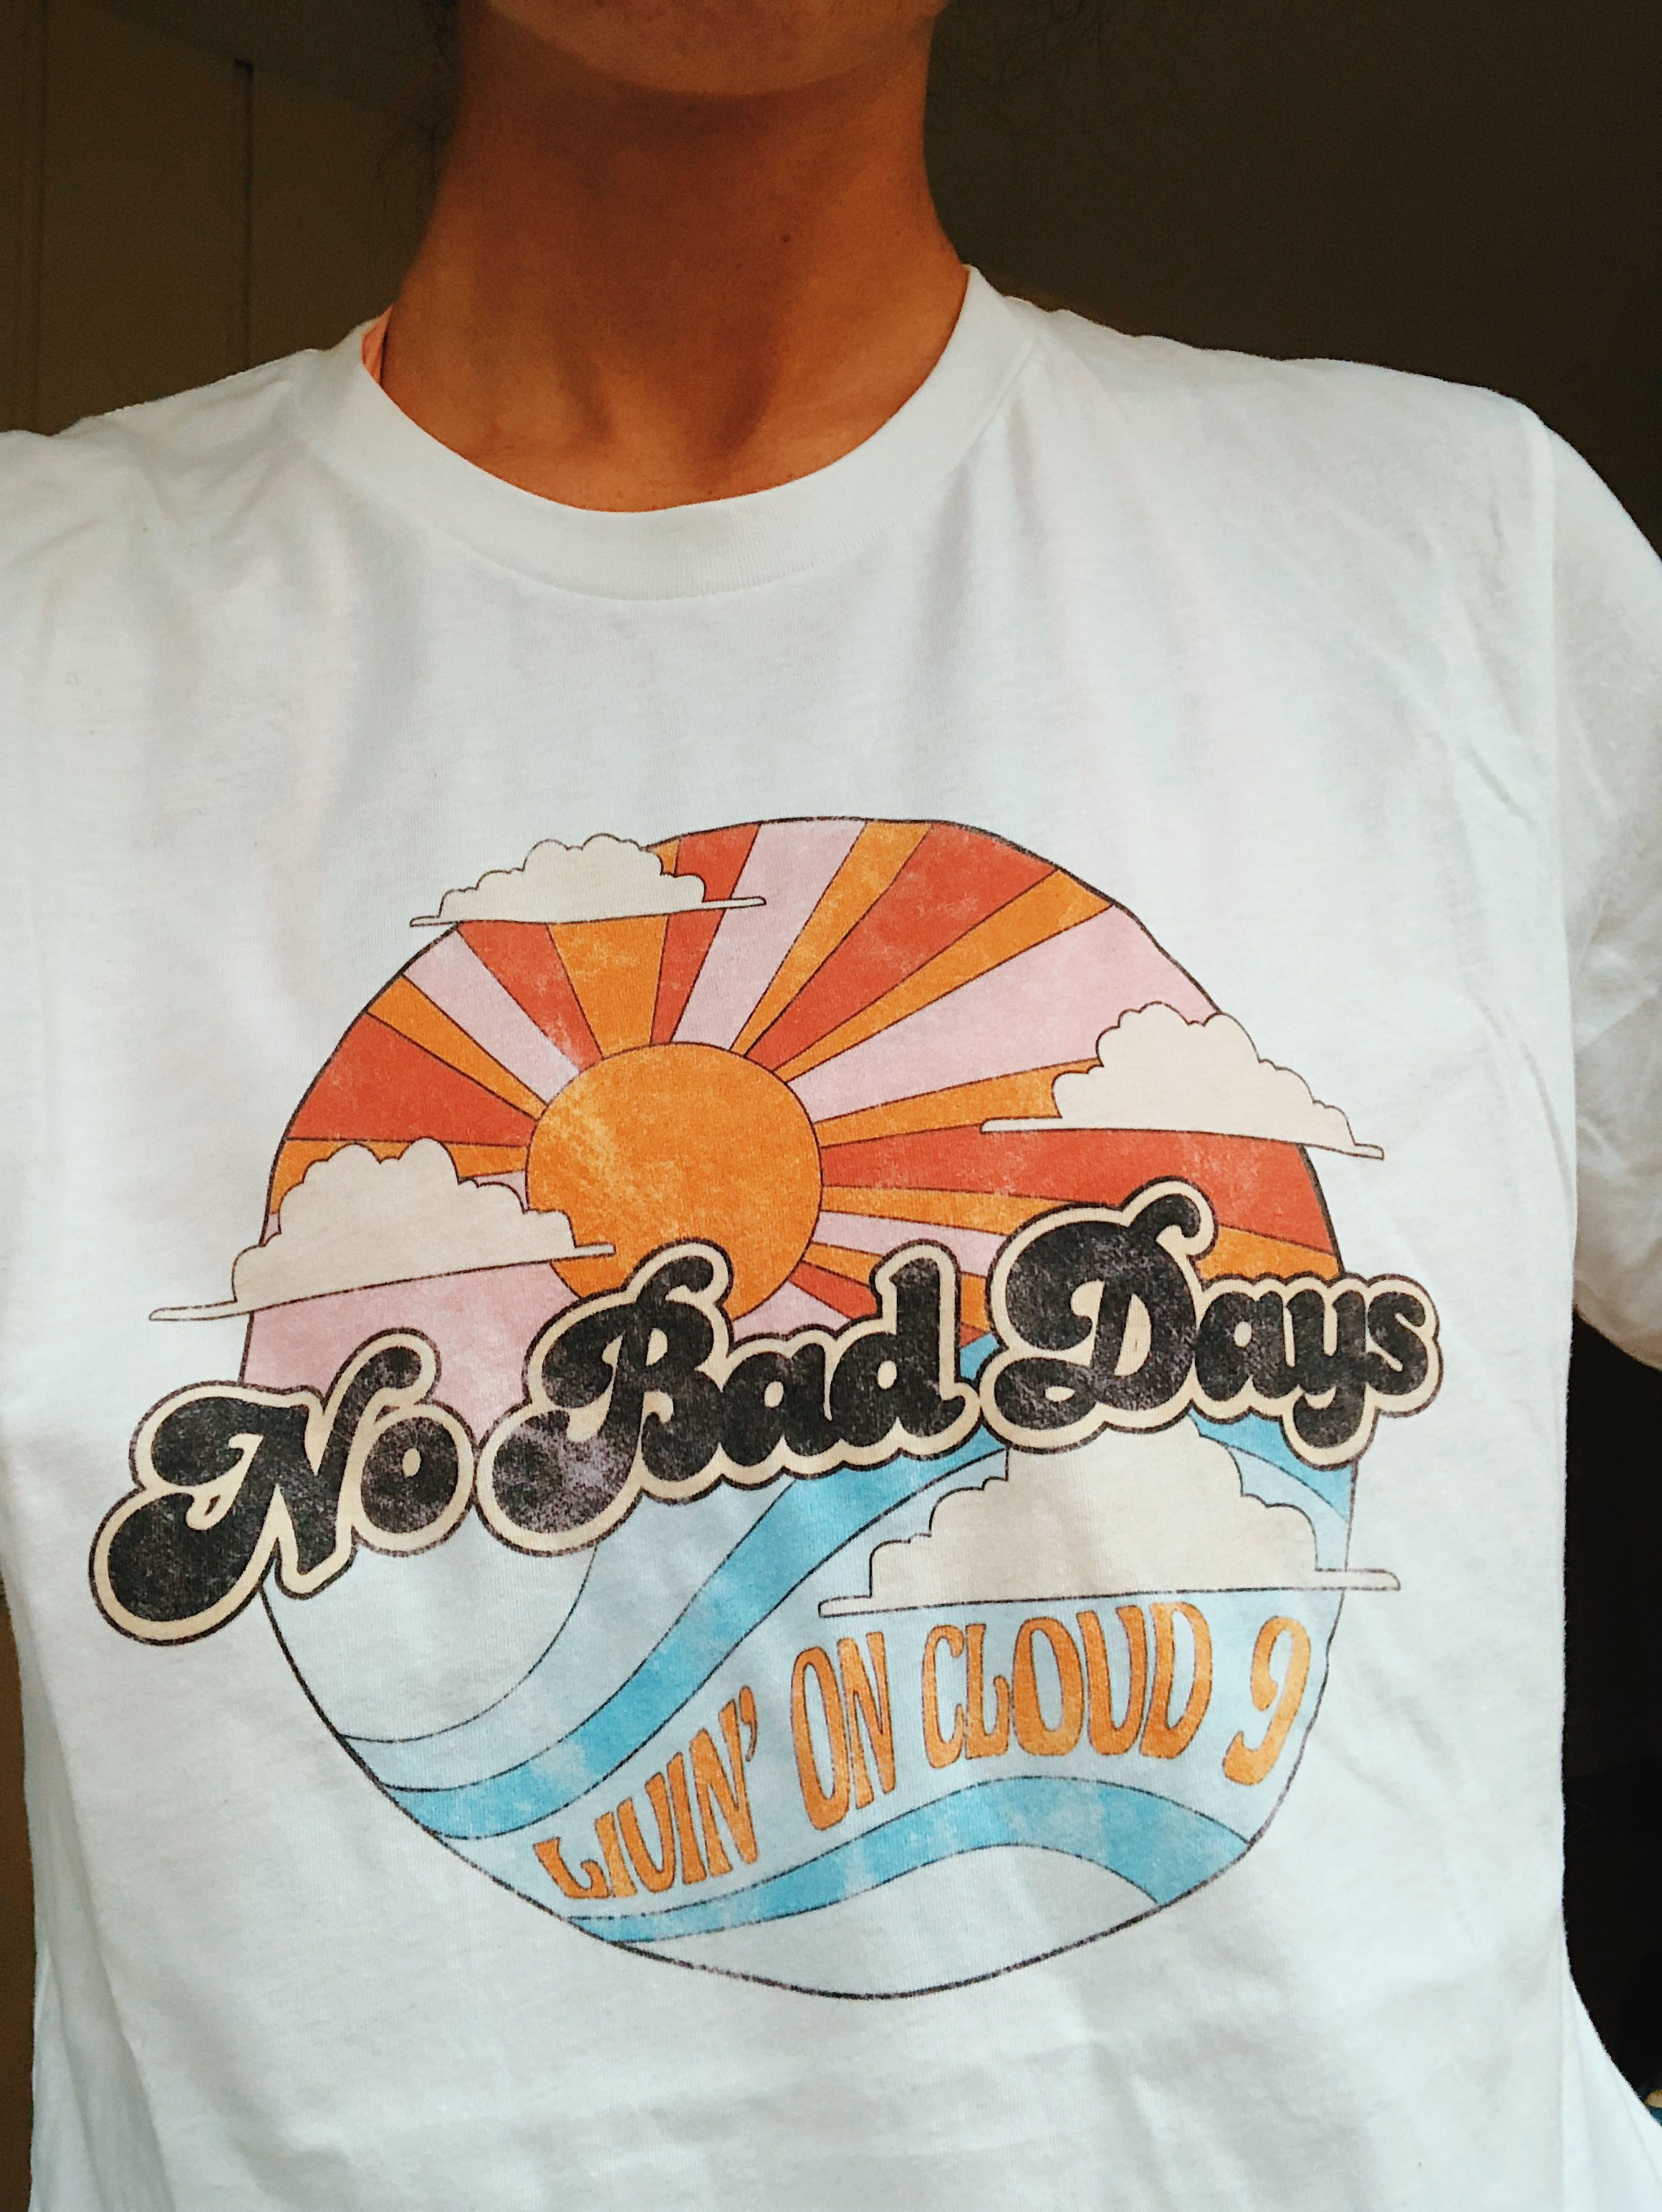 0e4b6bb8 No bad days! With perfectly distressed, worn-in graphics, these tees have a  vintage t-shirt look and feel. #graphictee #vintagetee #goodvibes